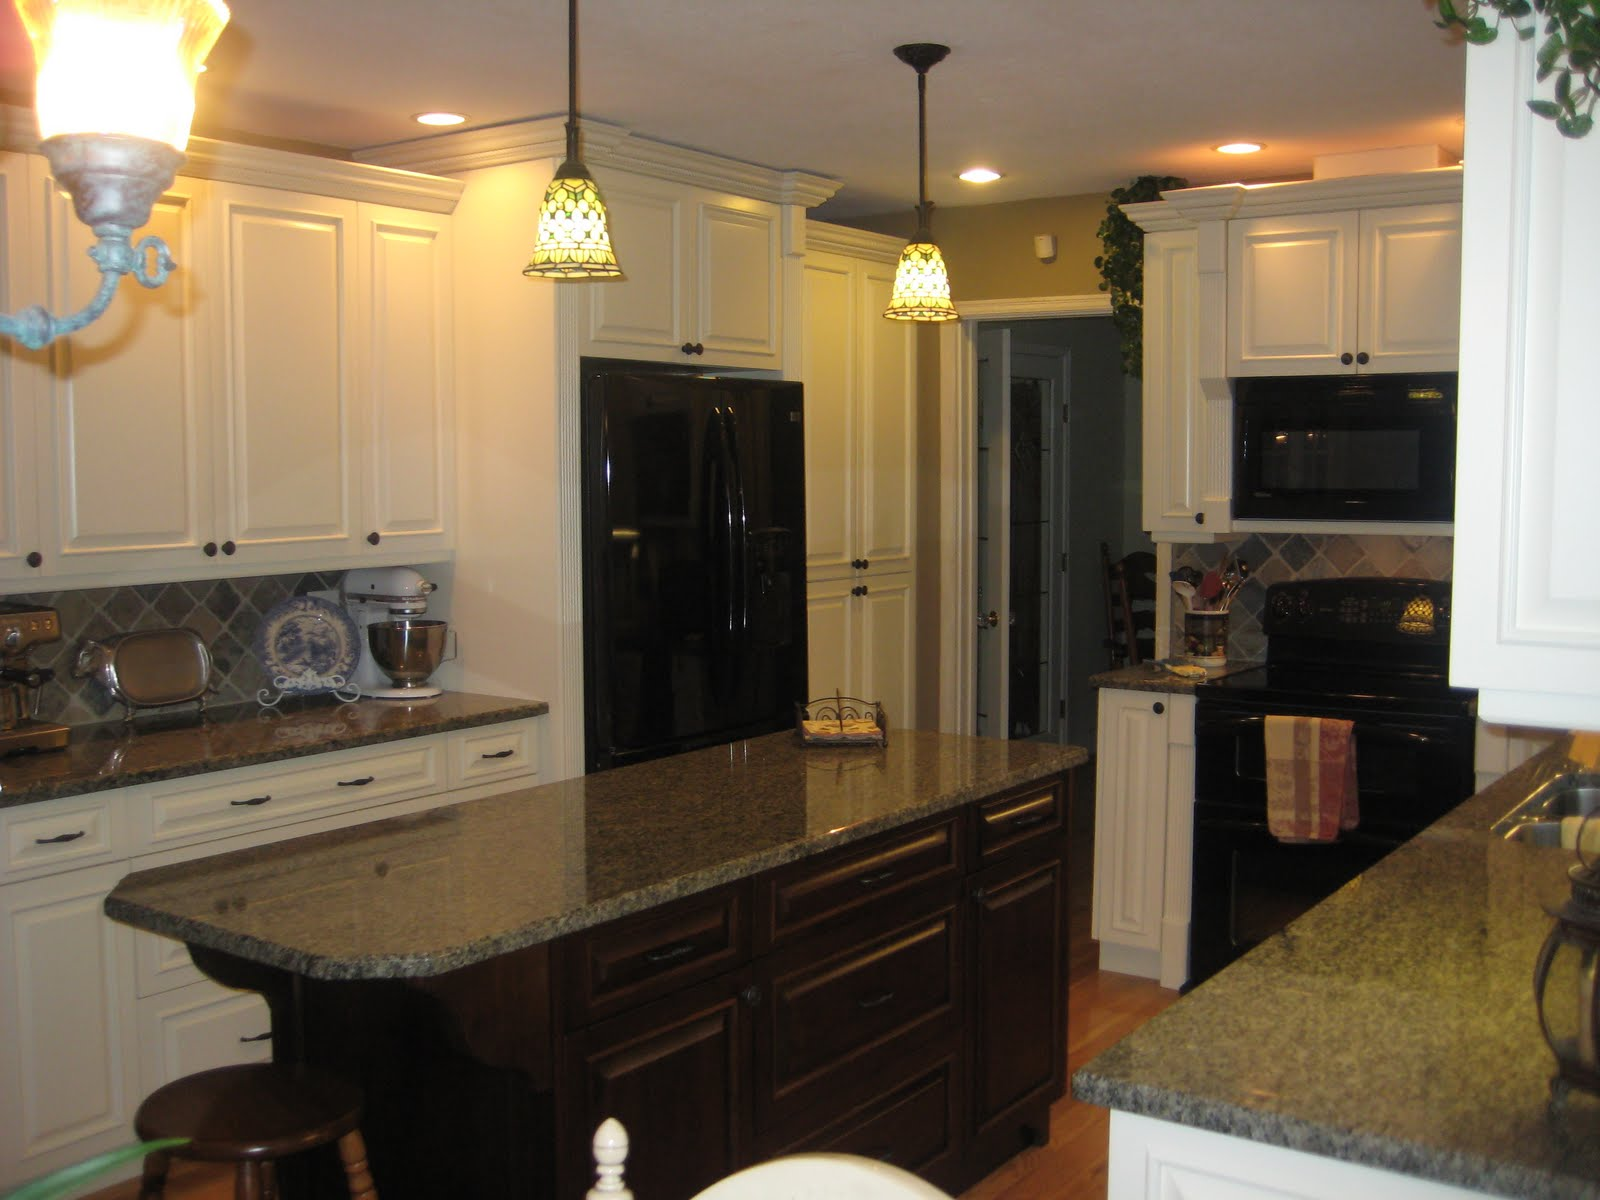 Remodelaholic white kitchen tour guest - White kitchen dark counters ...